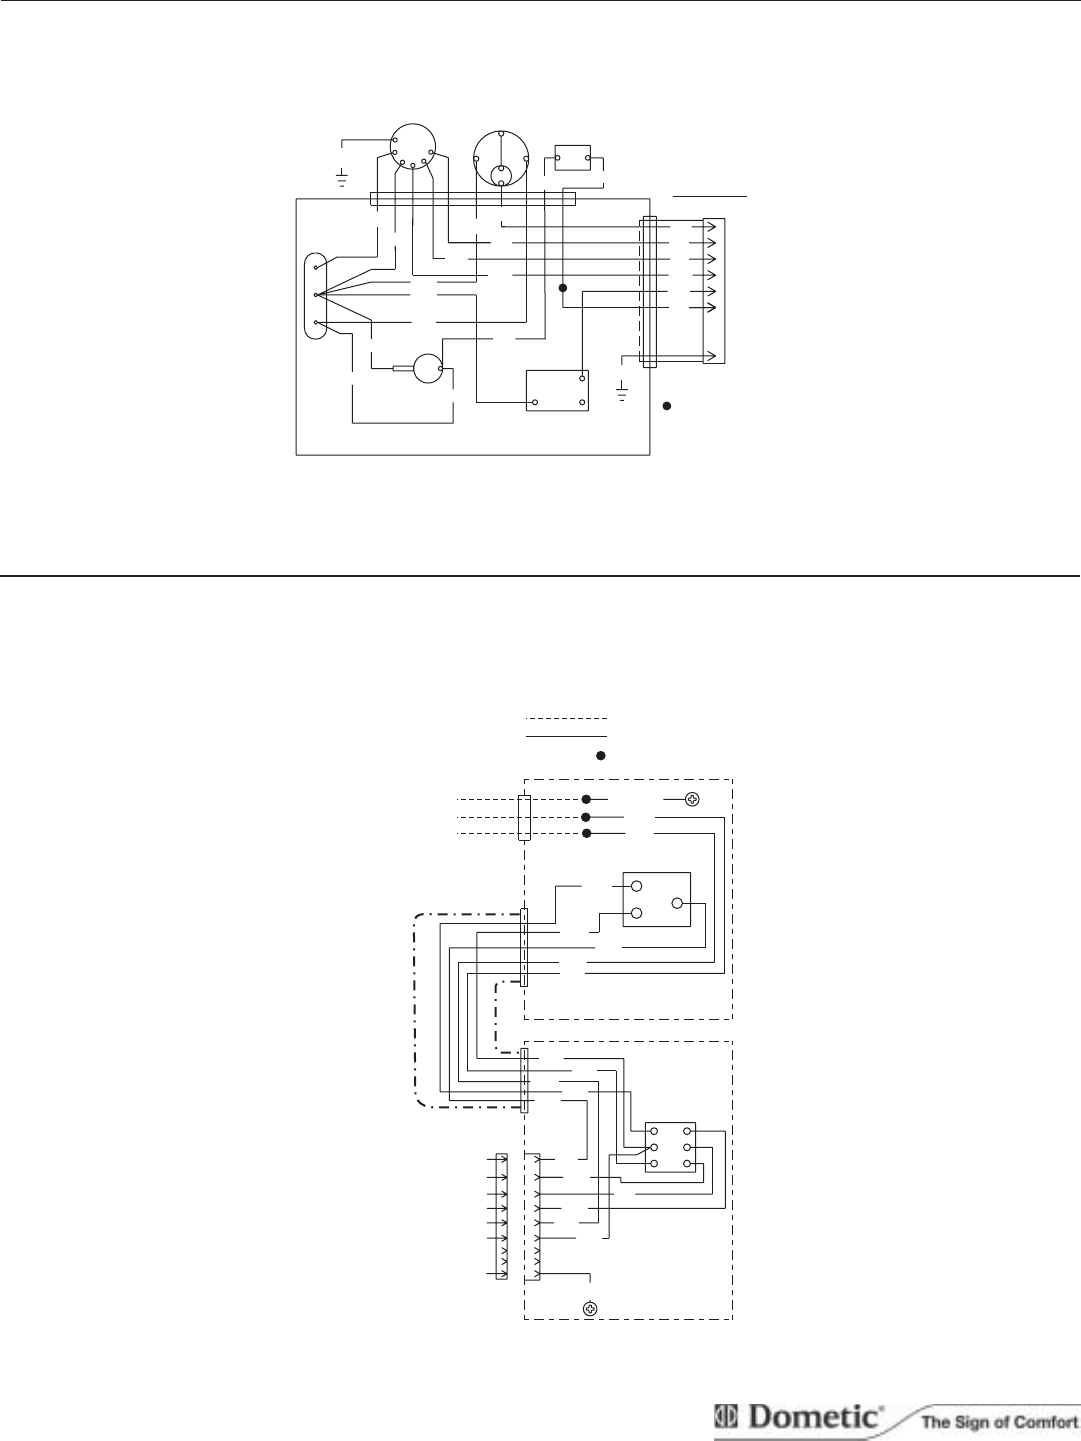 duo therm rv air conditioner diagram